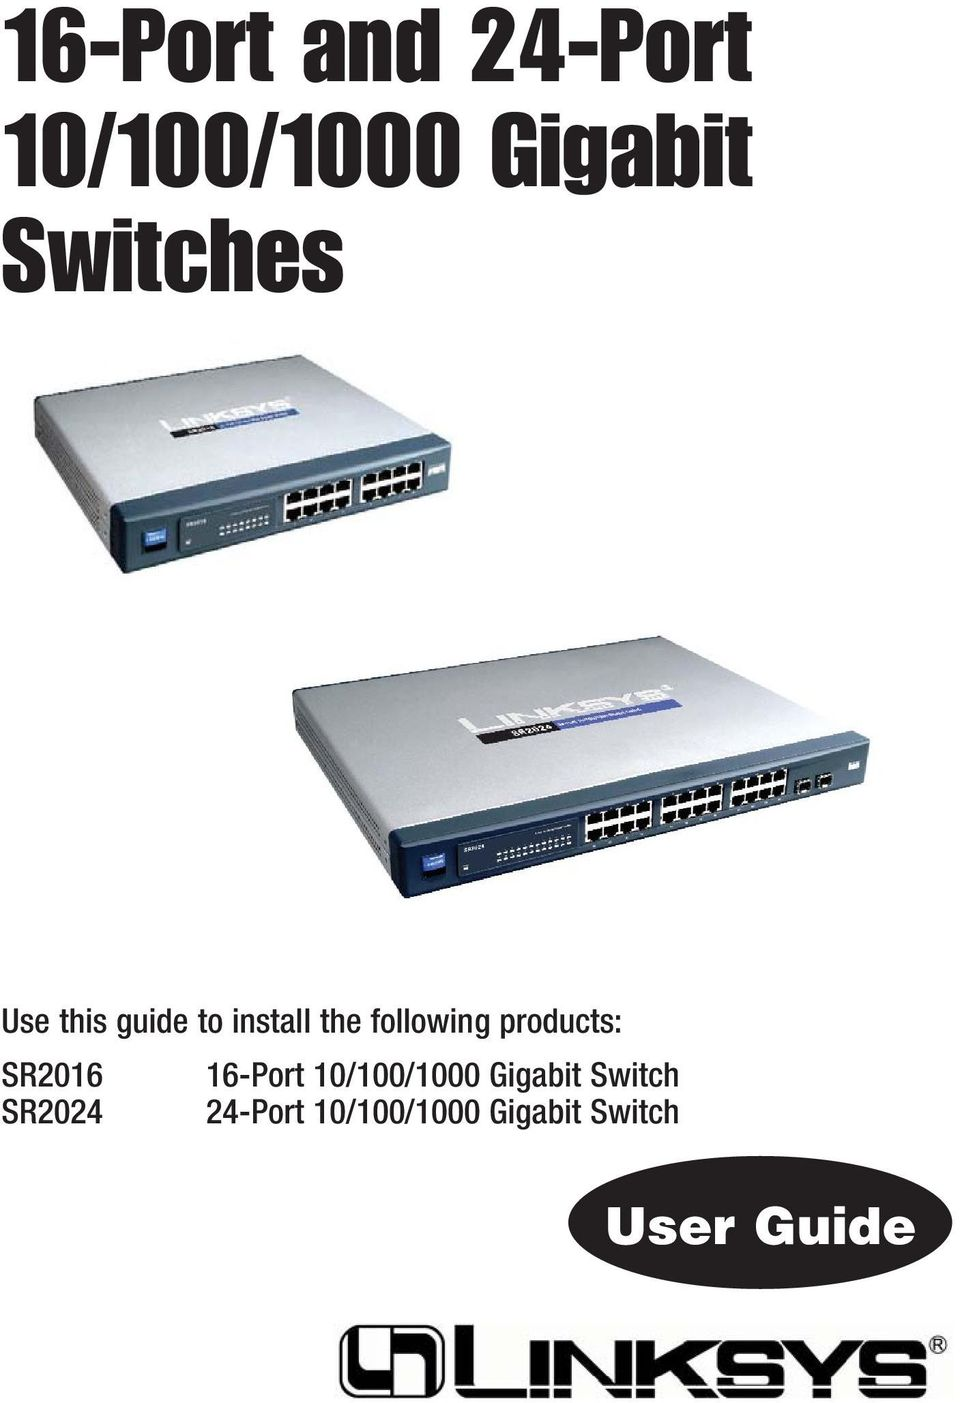 products: SR2016 16-Port 10/100/1000 Gigabit